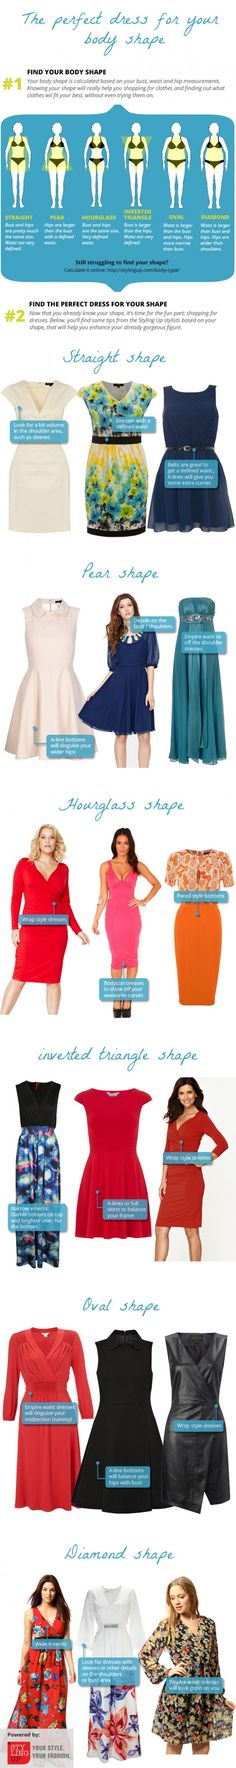 The perfect dress for your body shape